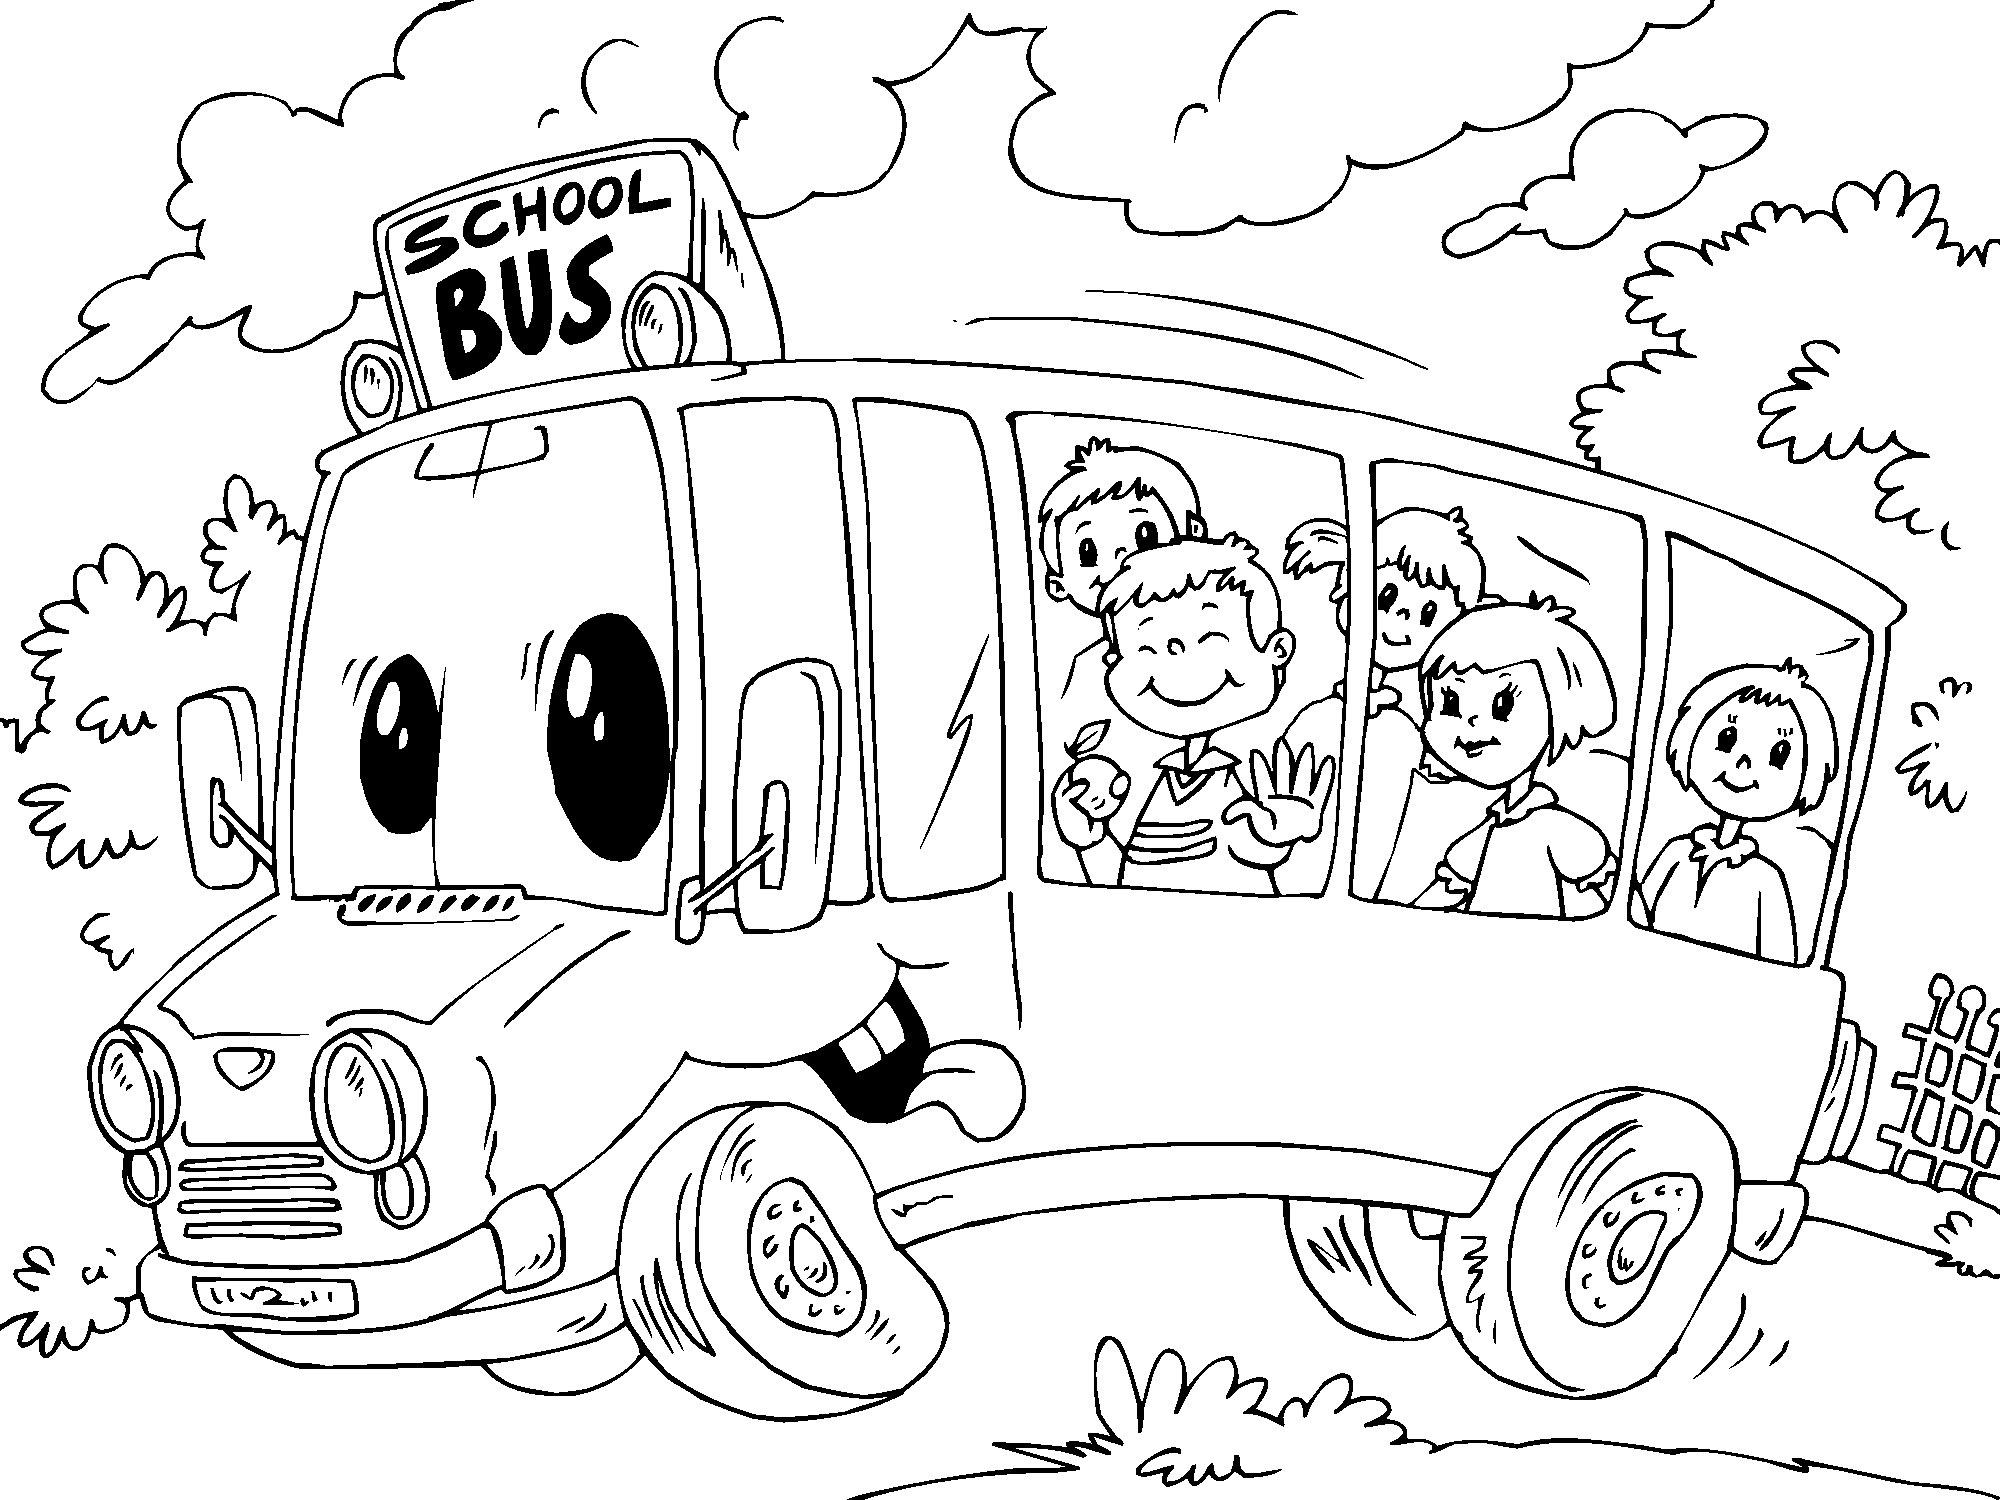 coloring sheet school bus coloring page free printable school bus coloring pages for kids page sheet coloring bus school coloring